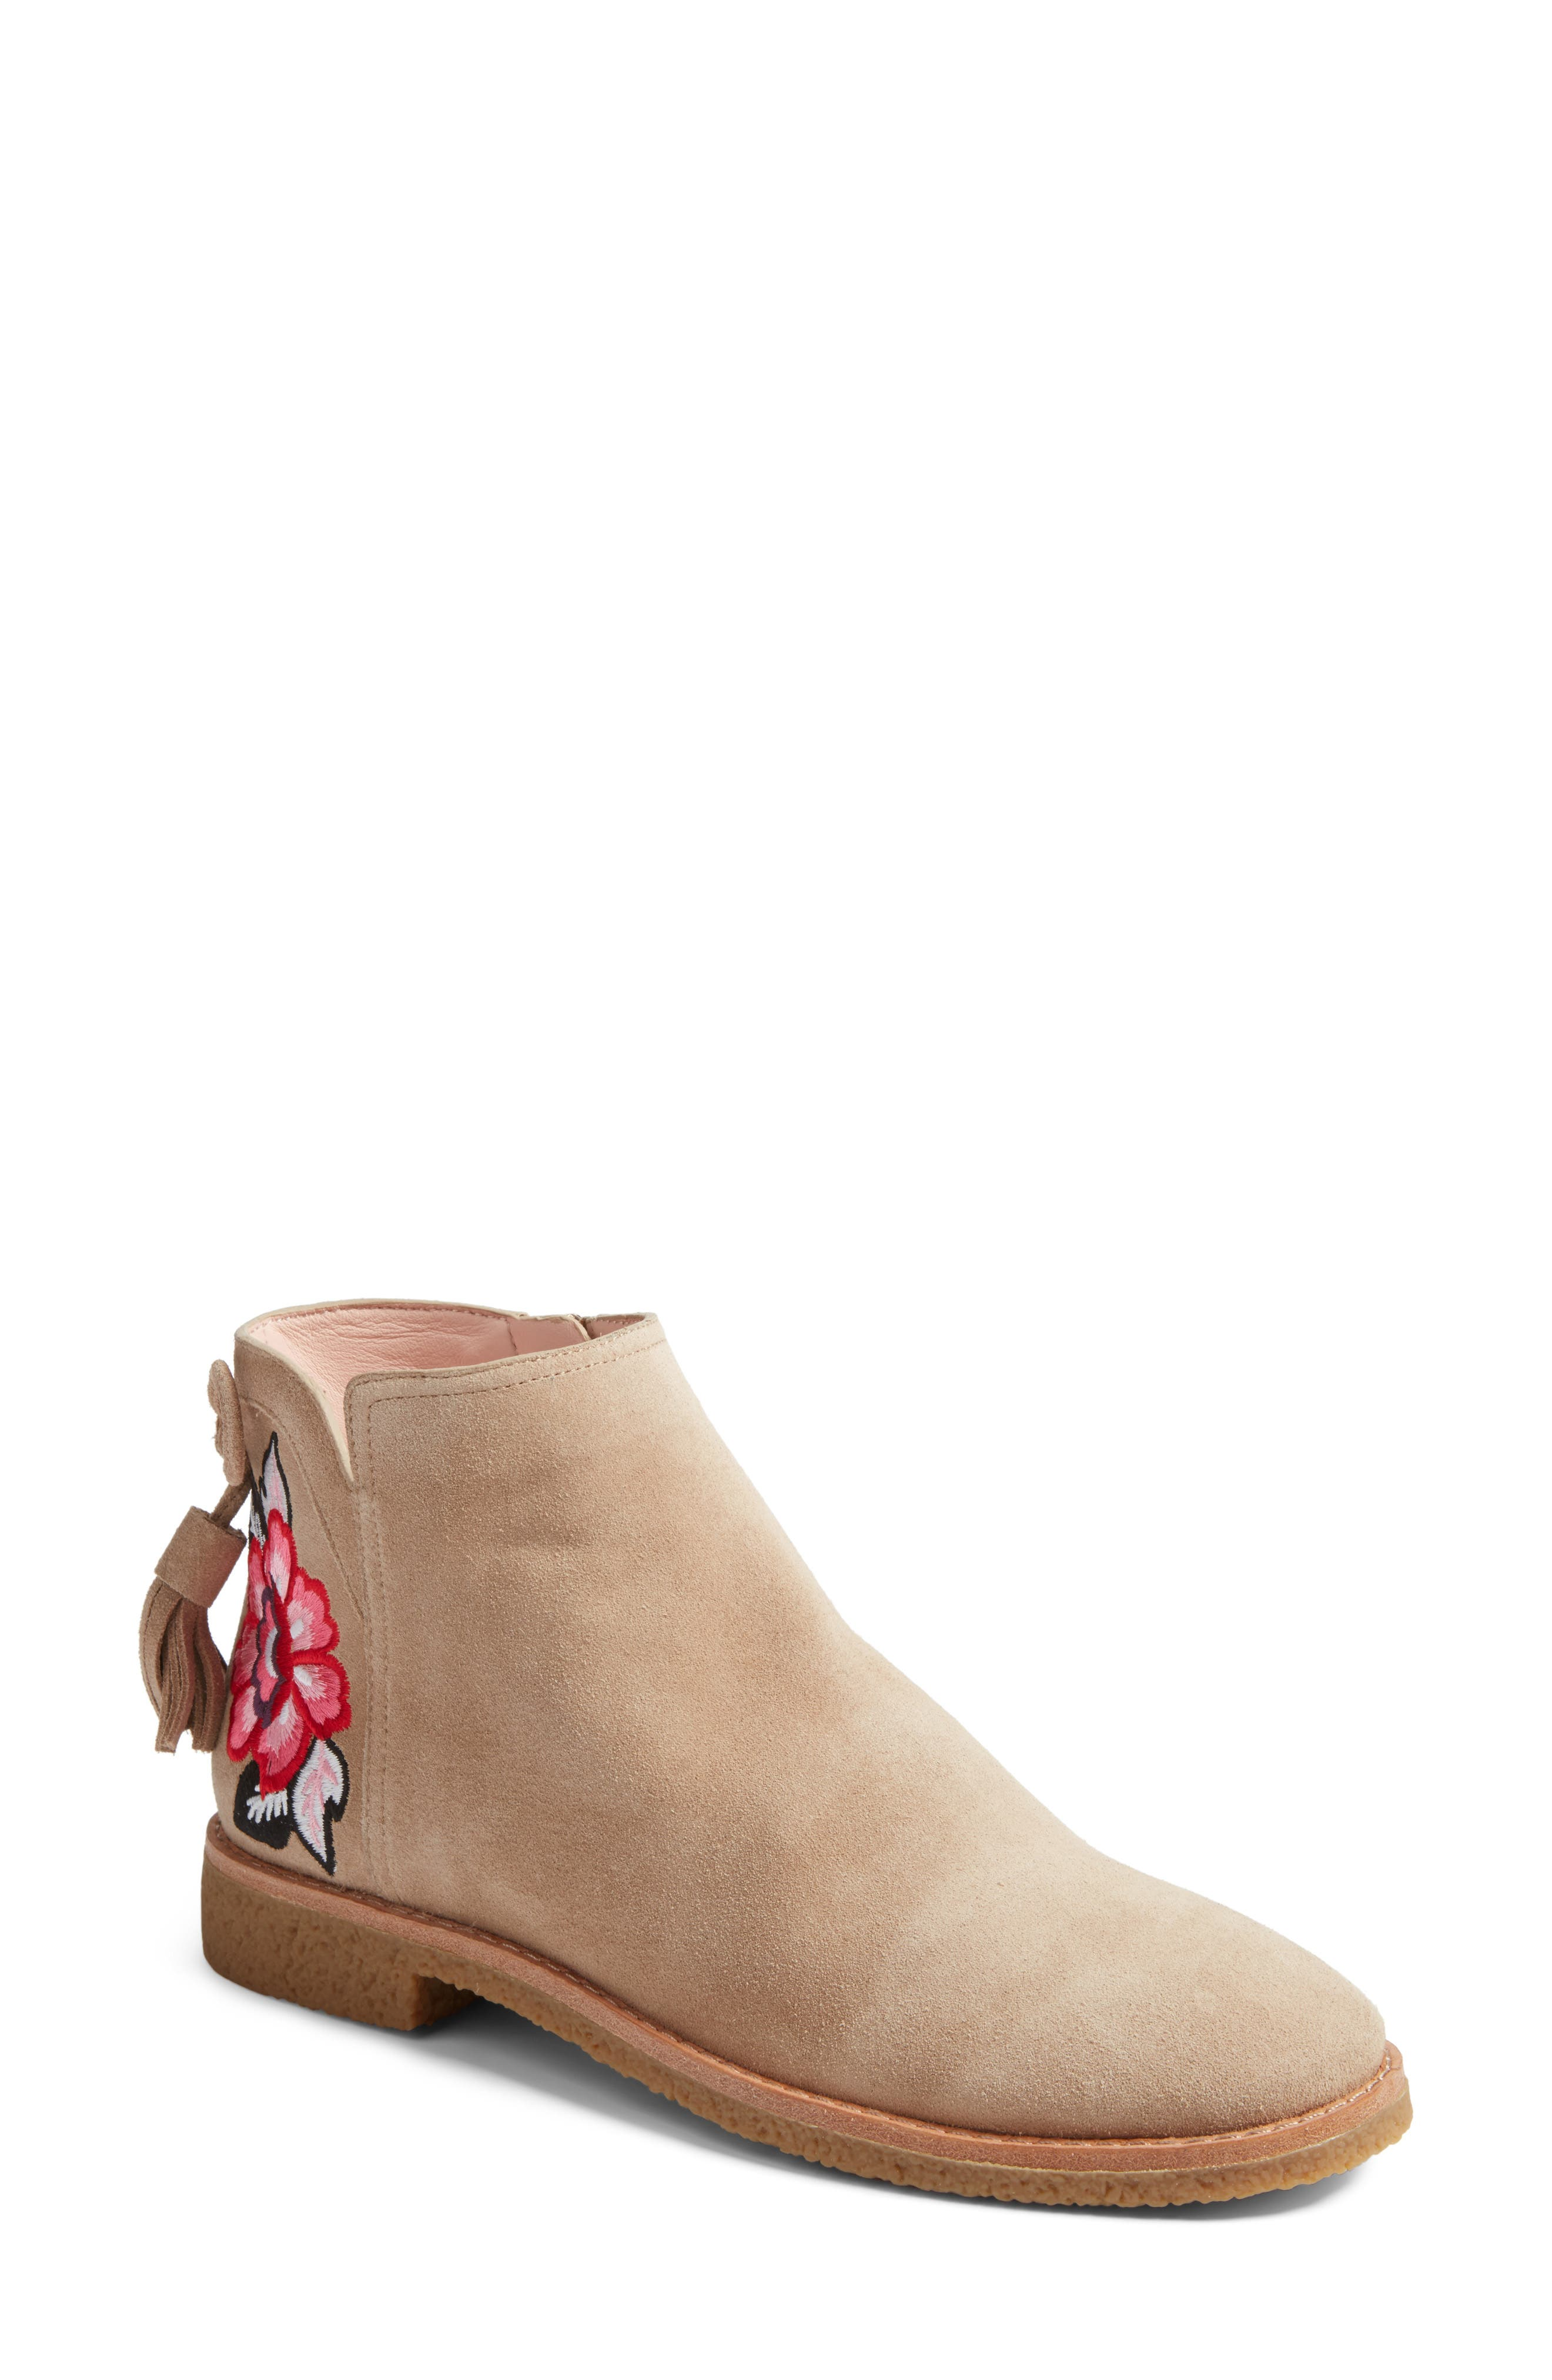 Alternate Image 1 Selected - kate spade new york belleville bootie (Women)